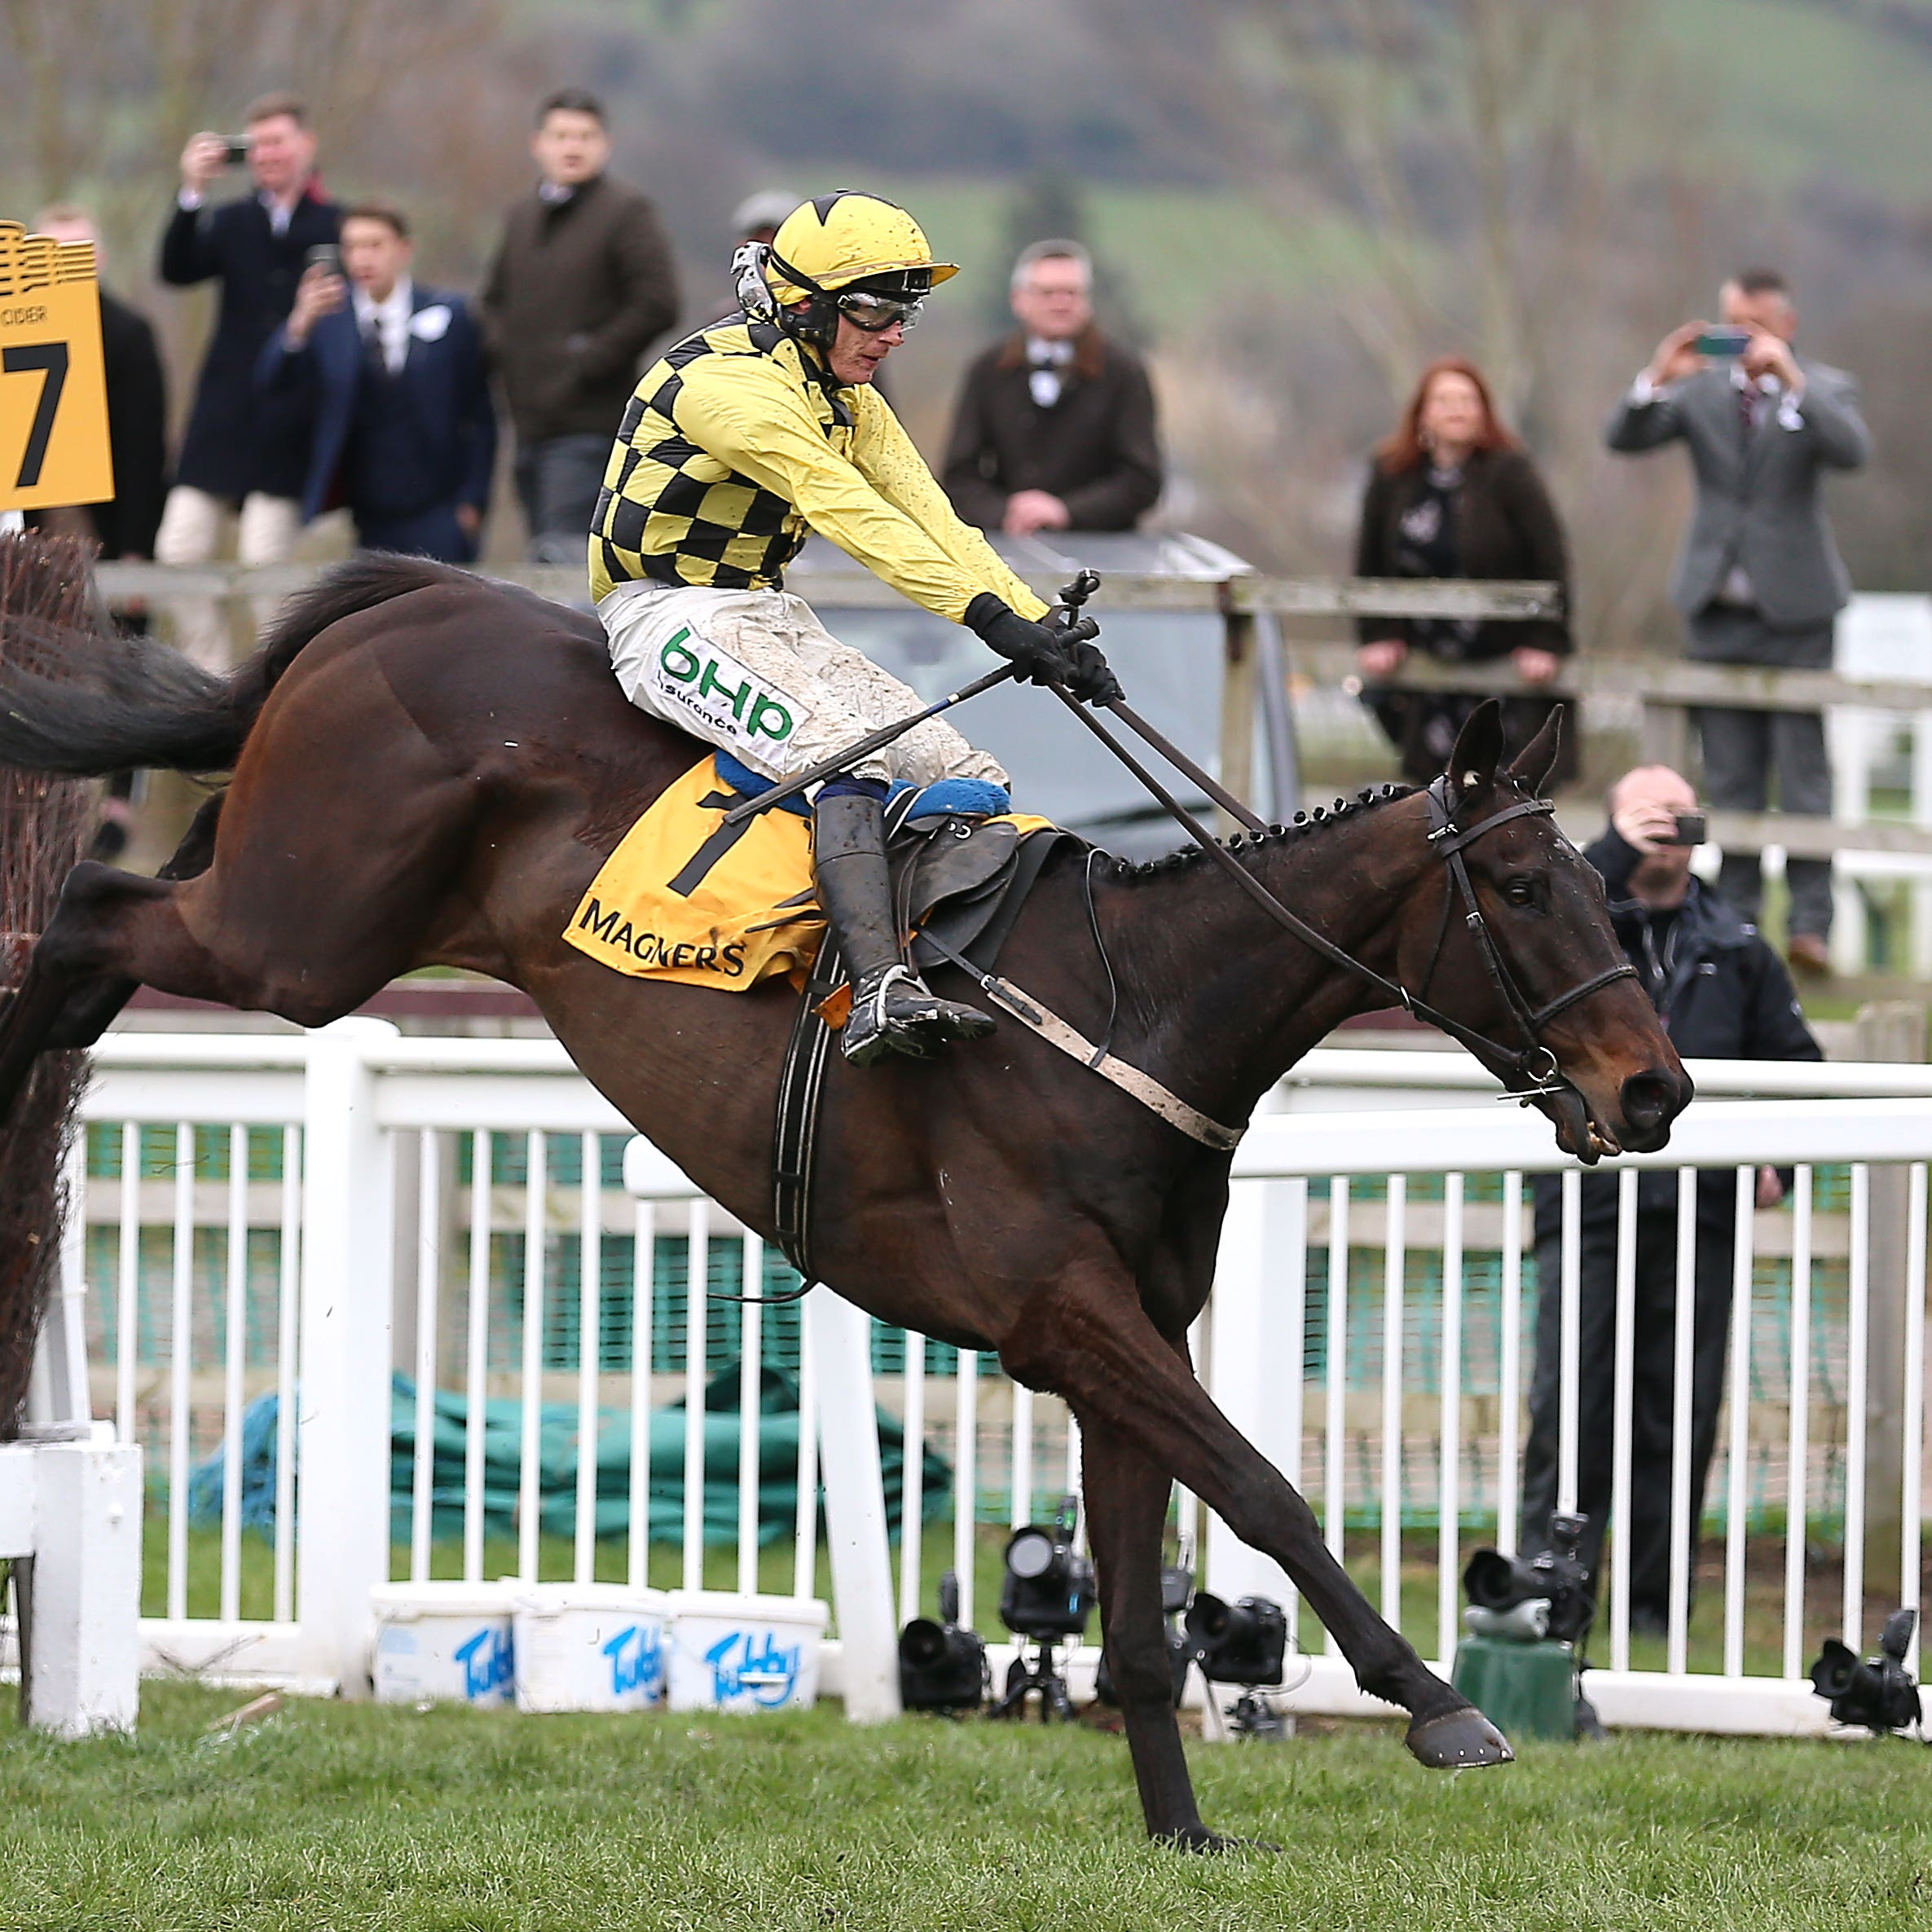 Al Boum Photo and Paul Tonwend on their way to victory in the Gold Cup